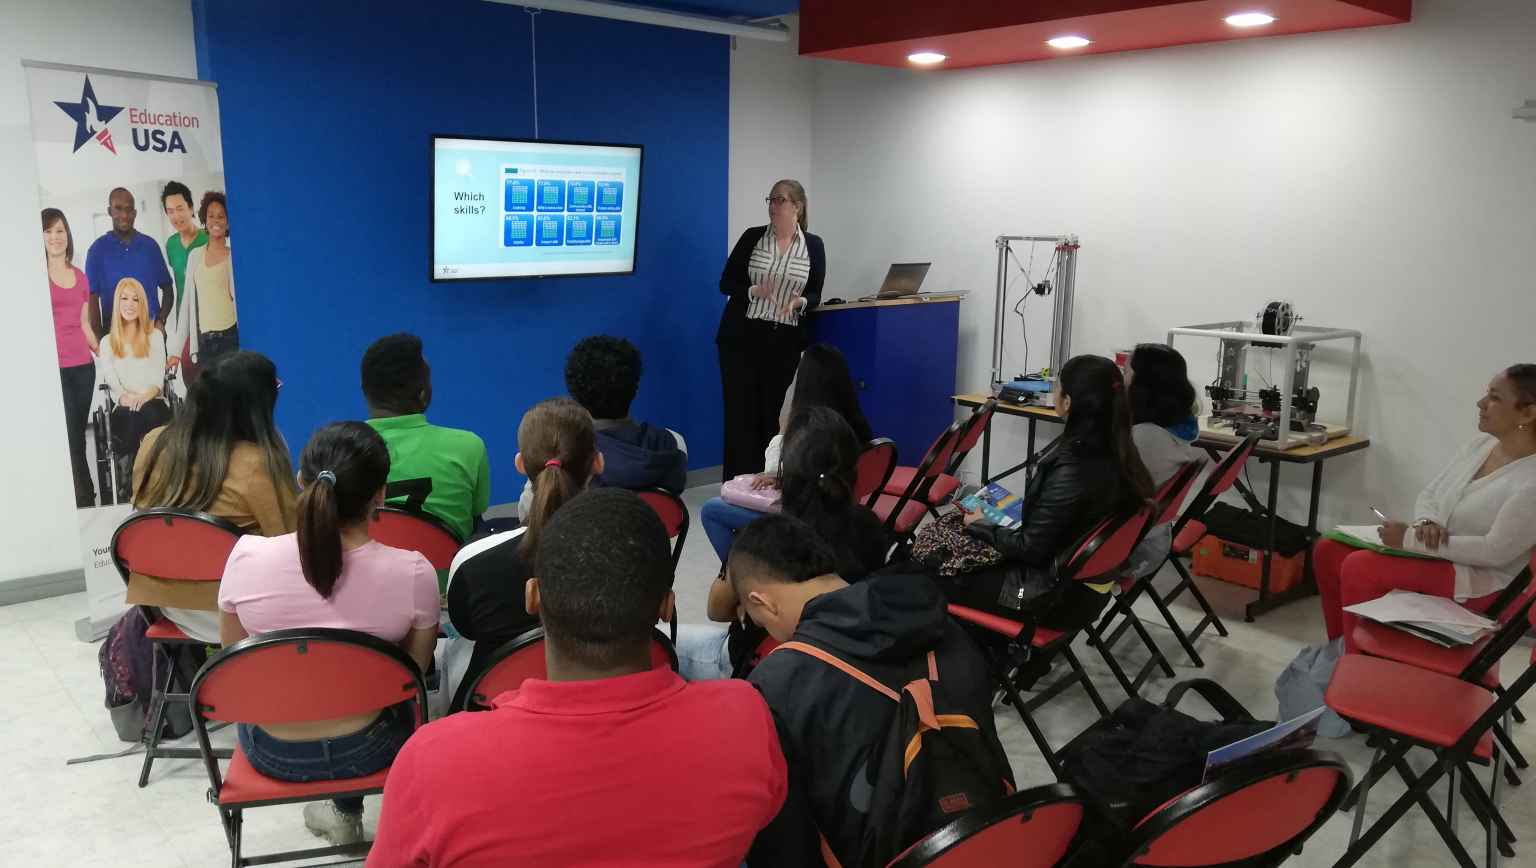 Some U.S. Universities visit The EducationUSA Center in Cali to meet local students and talk about their institutions.